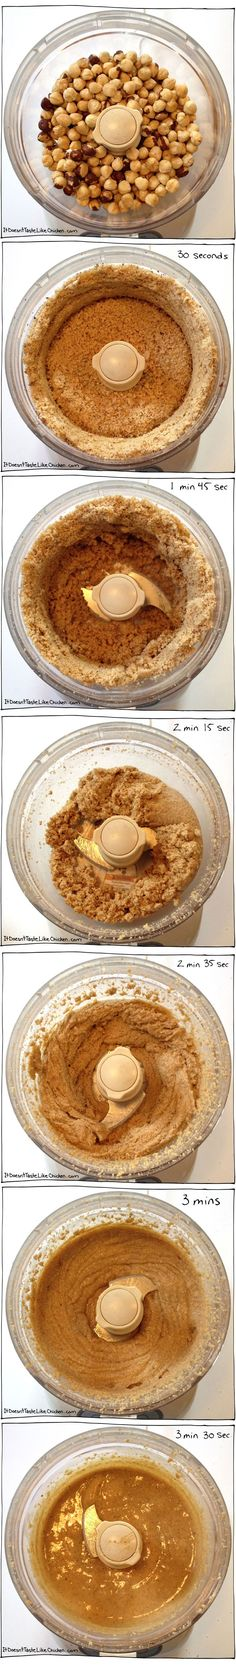 Homemade Hazelnut Butter Recipe. Just one ingredient to make this creamy delicious treat! #itdoesnttastelikechicken